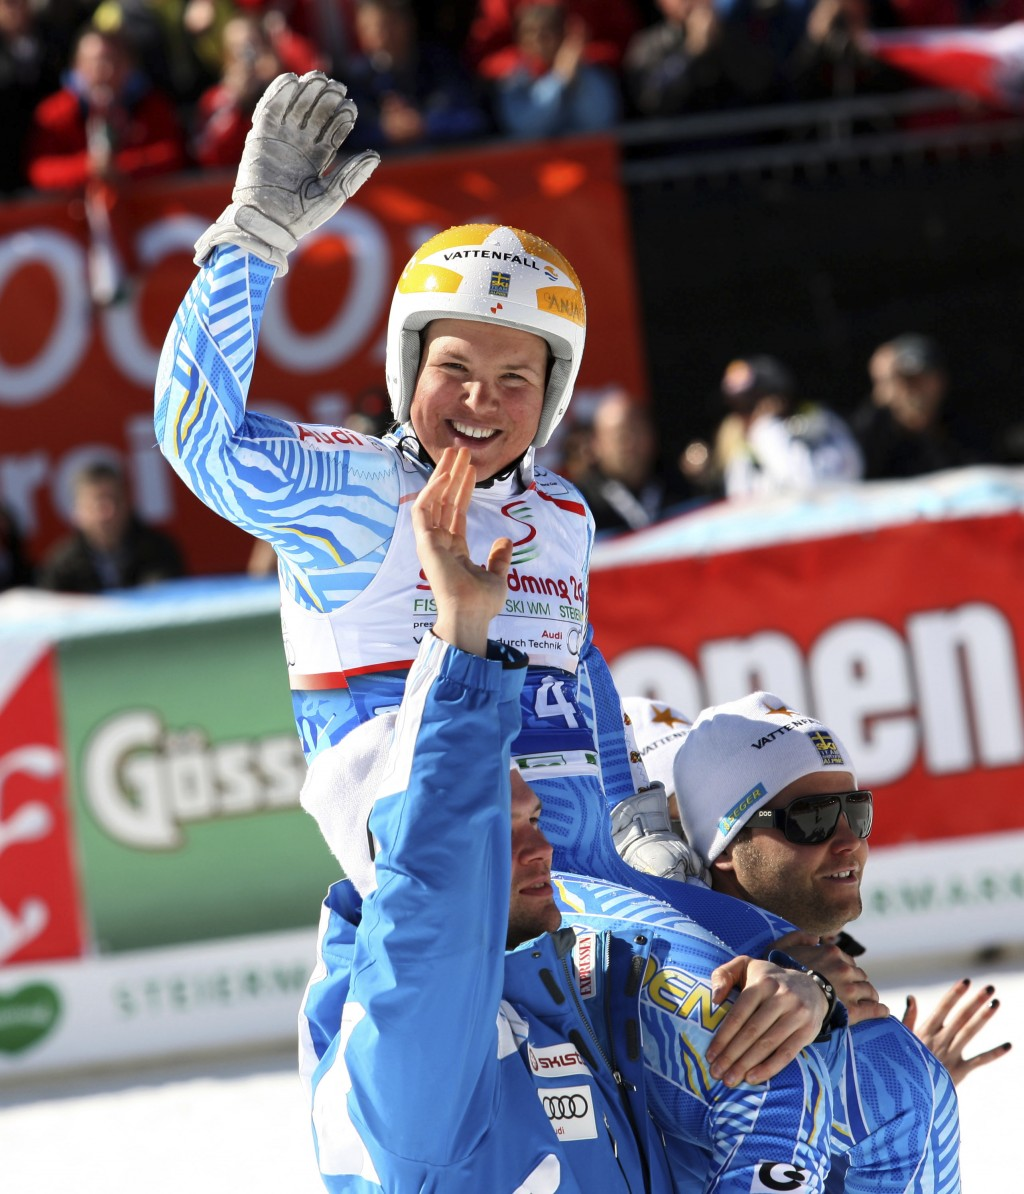 FILE - In this March 15, 2012 file photo, Sweden's Anja Paerson is carried on her teammates' shoulders after completing an alpine ski in the women's W...